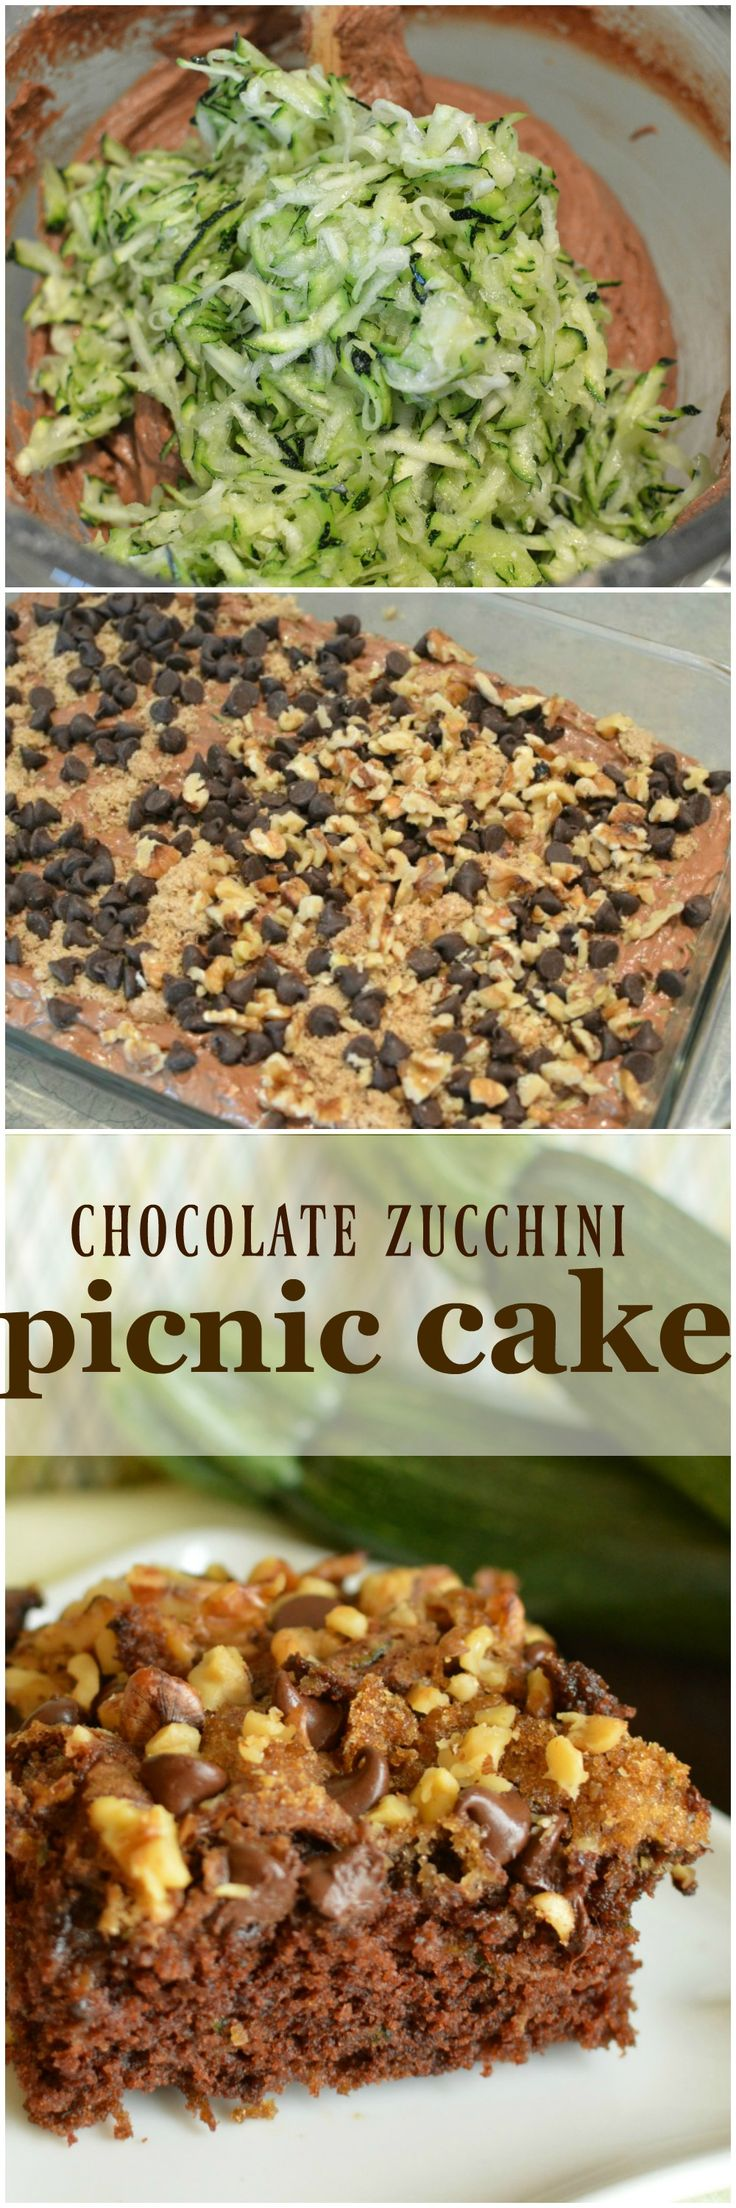 Chocolate Zucchini Picnic Cake is a super moist cake topped with chocolate chips, brown sugar, and walnuts! Heavenly!  Little Dairy on the Prairie